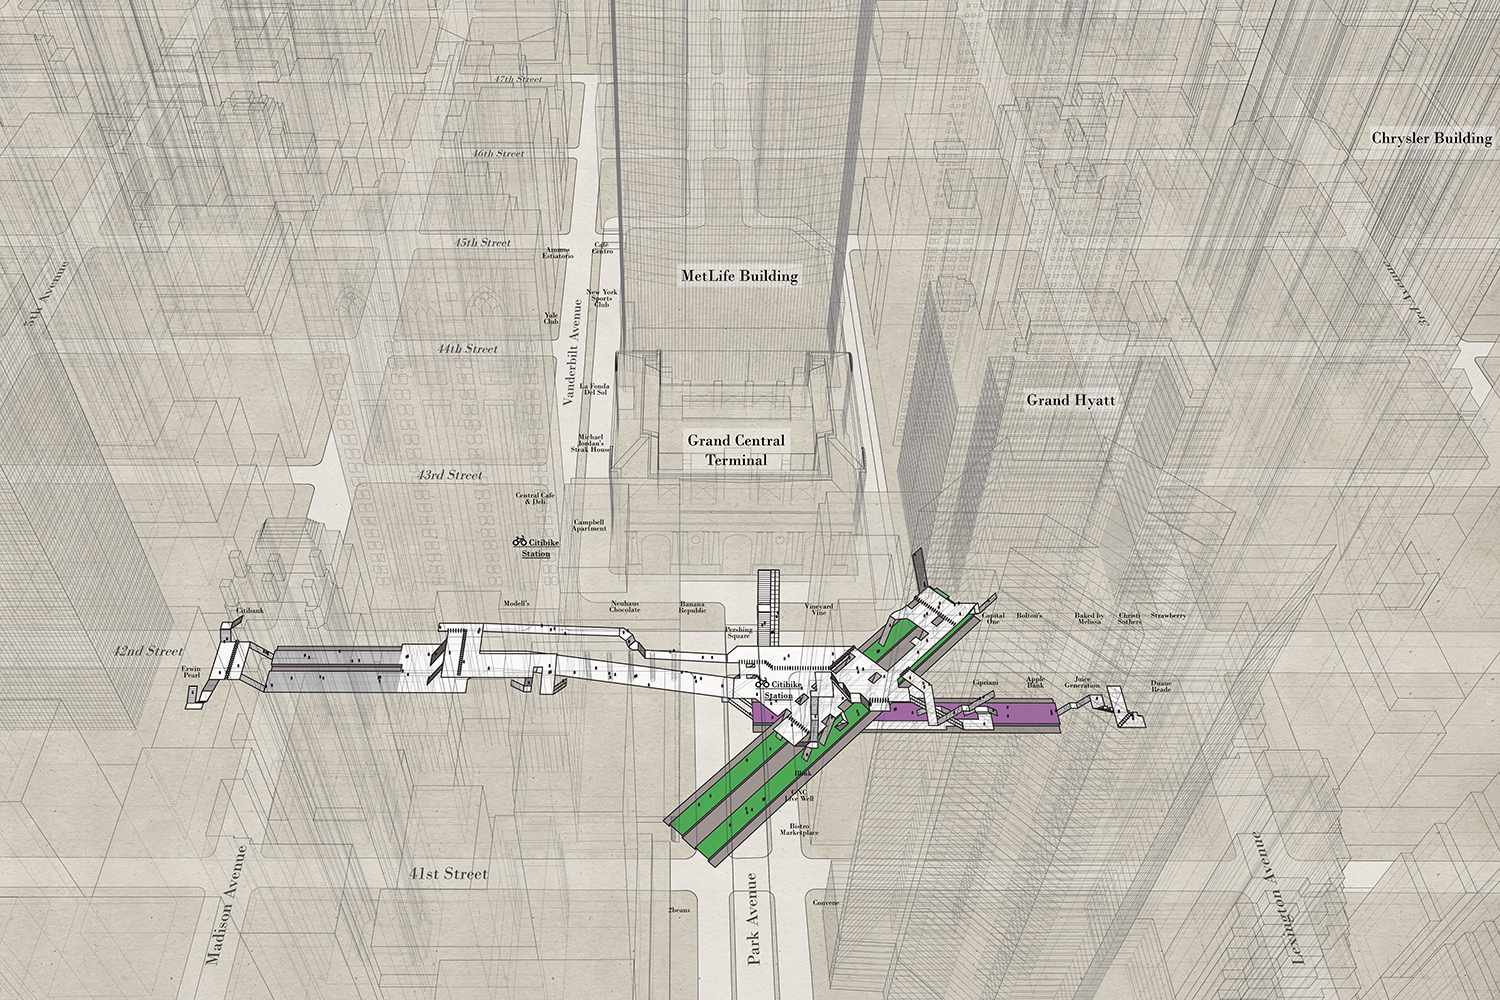 an aerial architectural map showing the New York train station at 42nd Street Grand Central